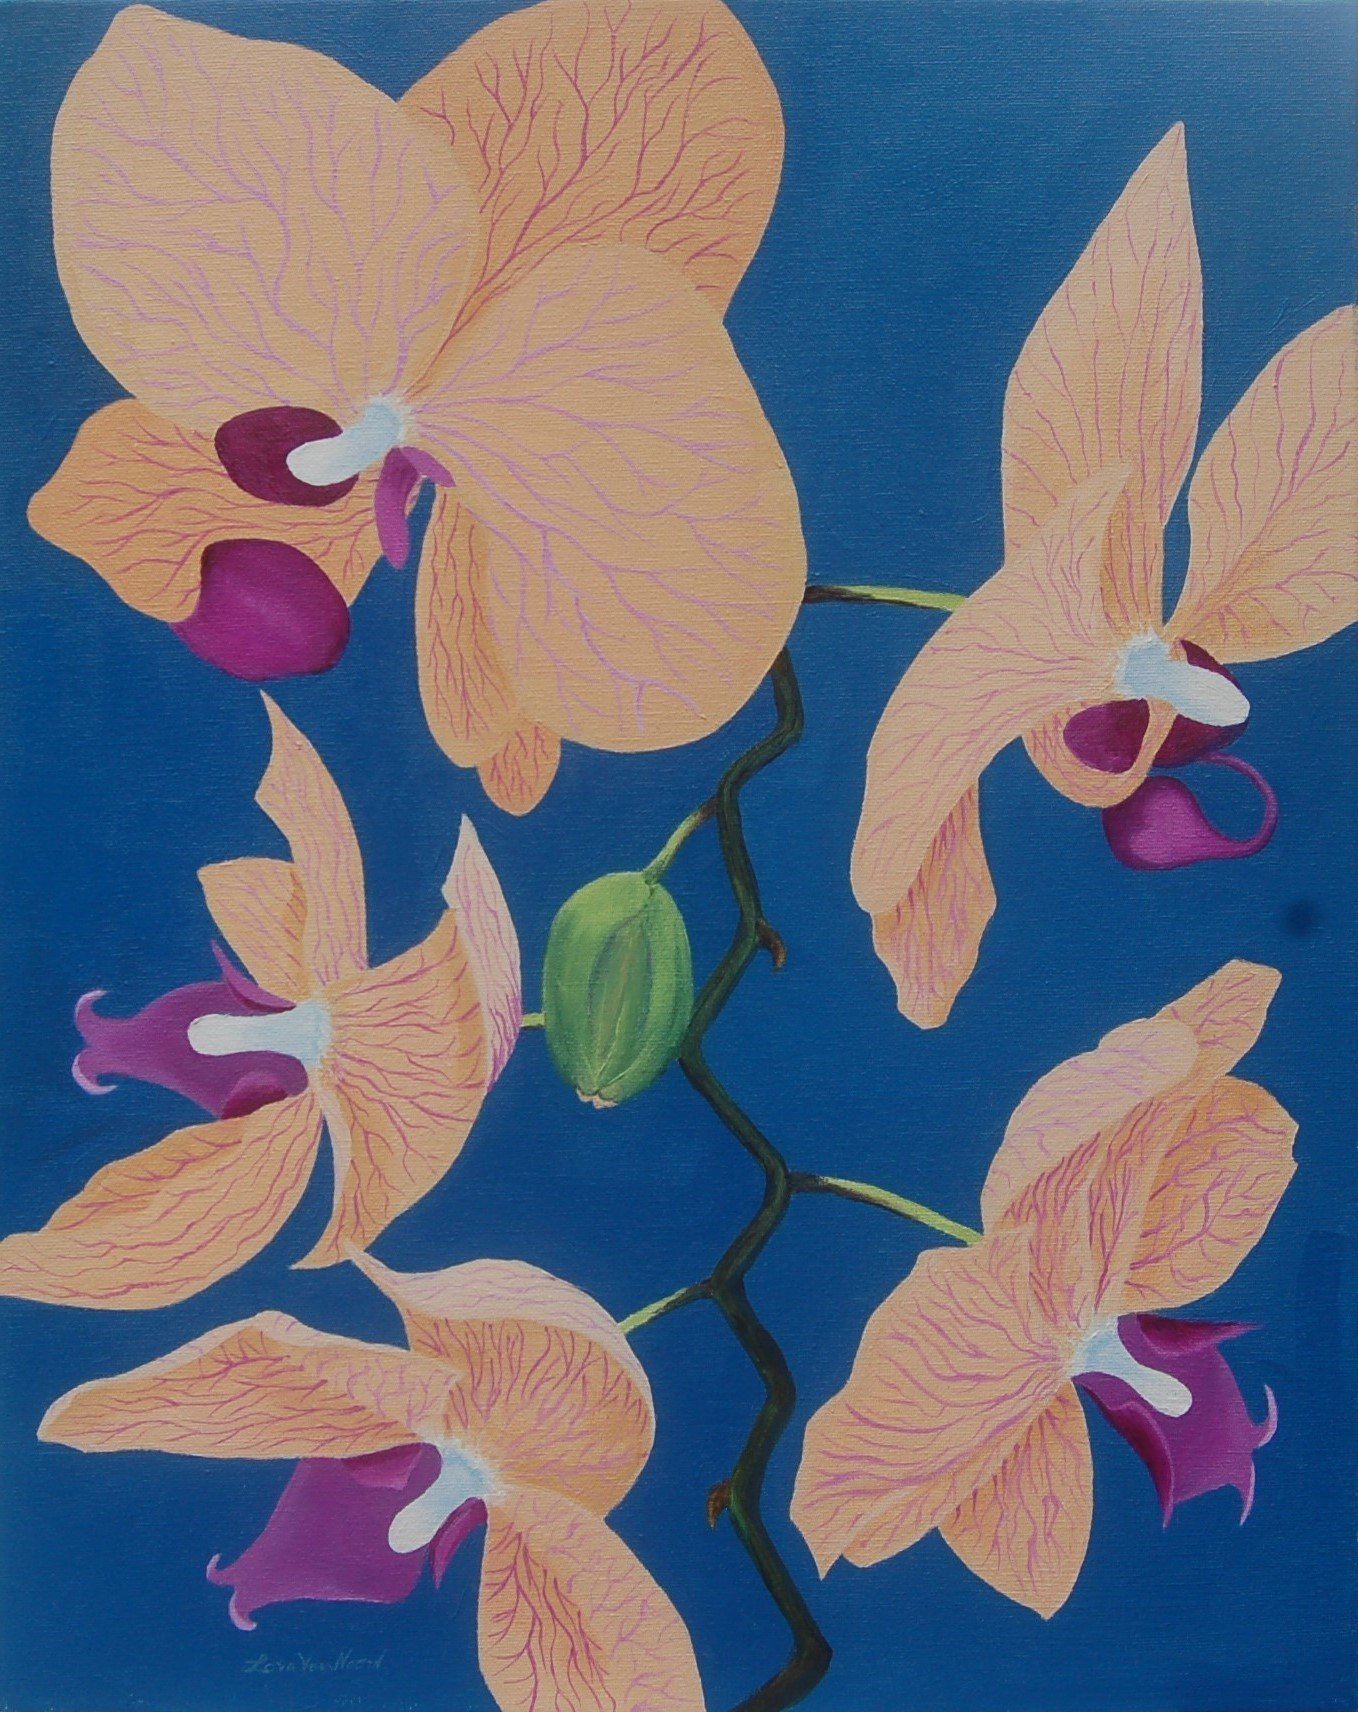 Lora Vannoord; Peach Orchids, 2018, Original Painting Oil, 16 x 20 inches. Artwork description: 241 An original oil painting on canvas.  Inspired by my new love of orchids since living in Florida...